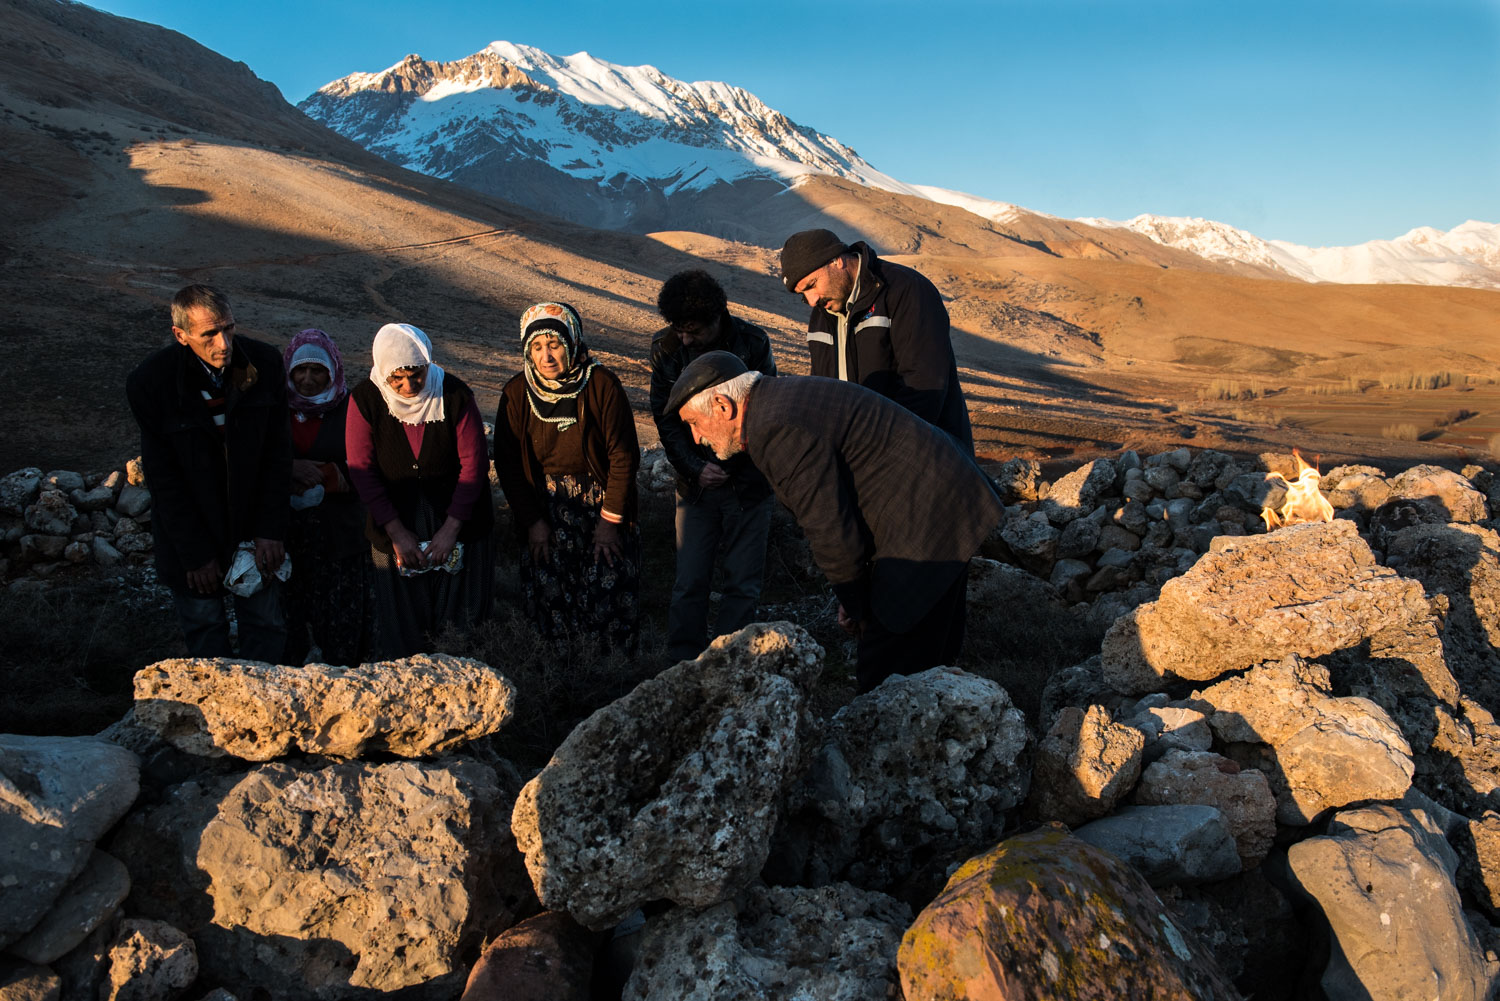 Men and women pray together in an outdoor ceremony on a sacred hill in the upper Munzur Valley.